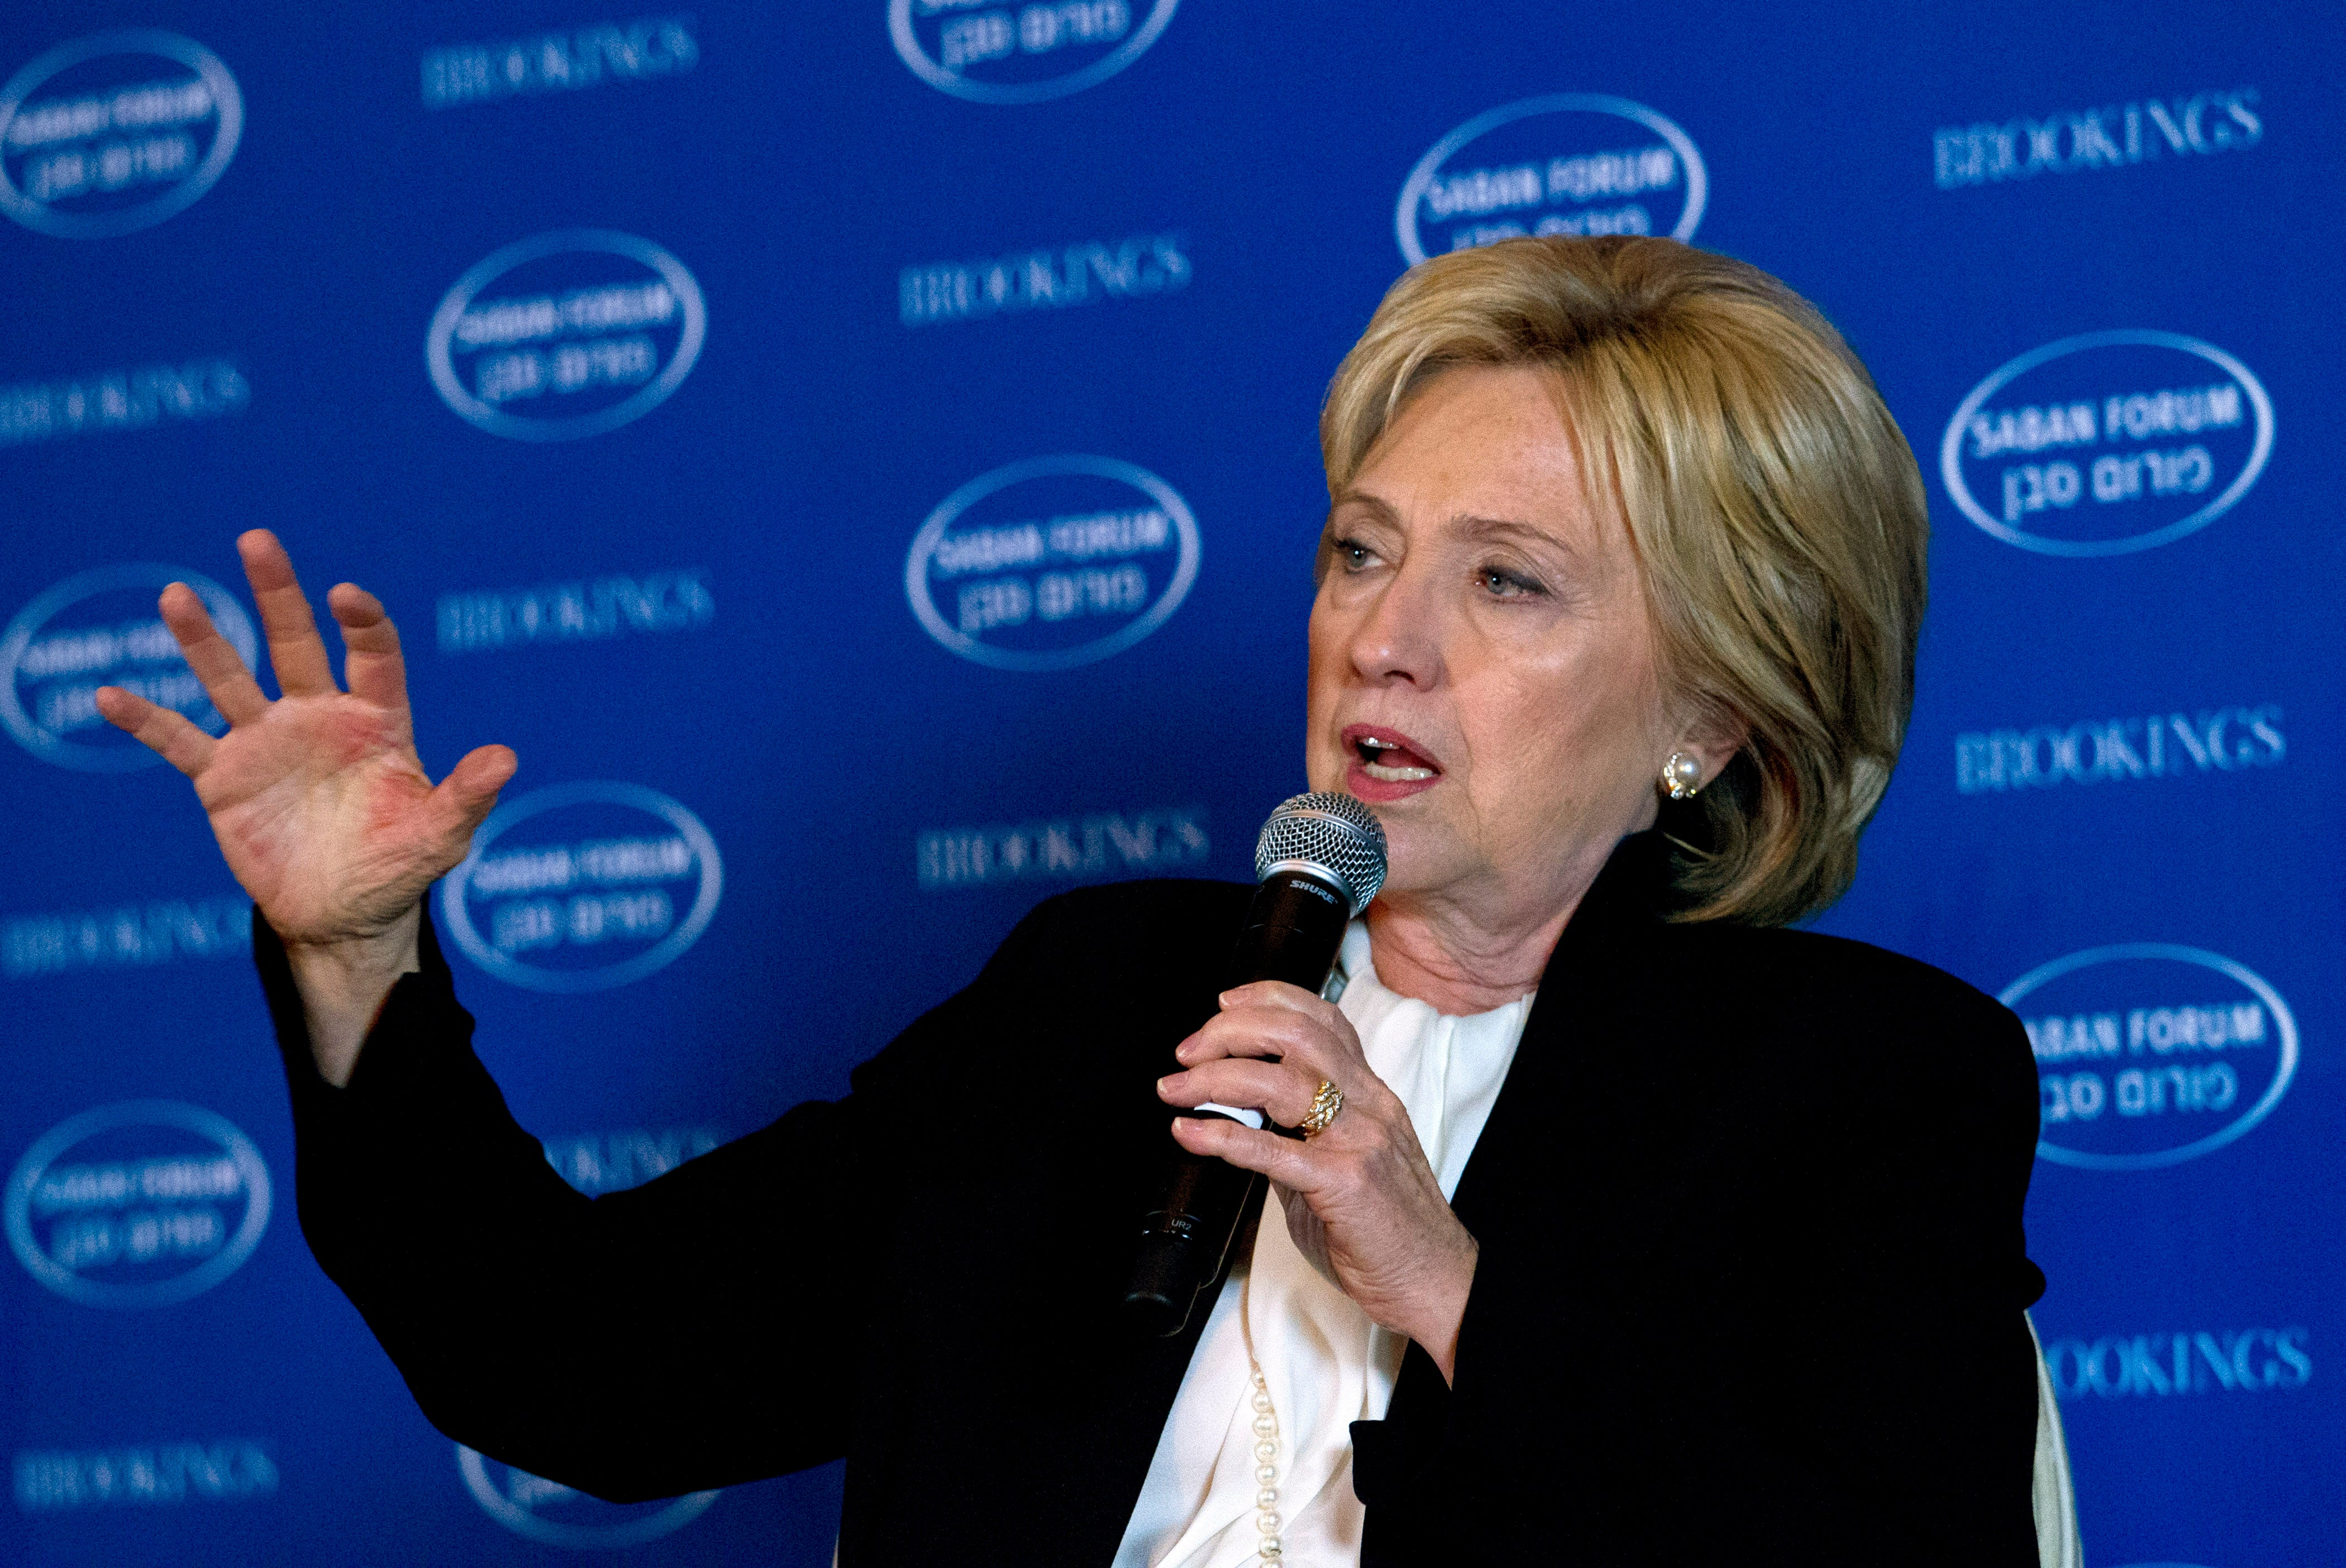 Hillary Clinton's Plea for Silicon Valley to Disrupt ISIS Is Misguided Nonsense